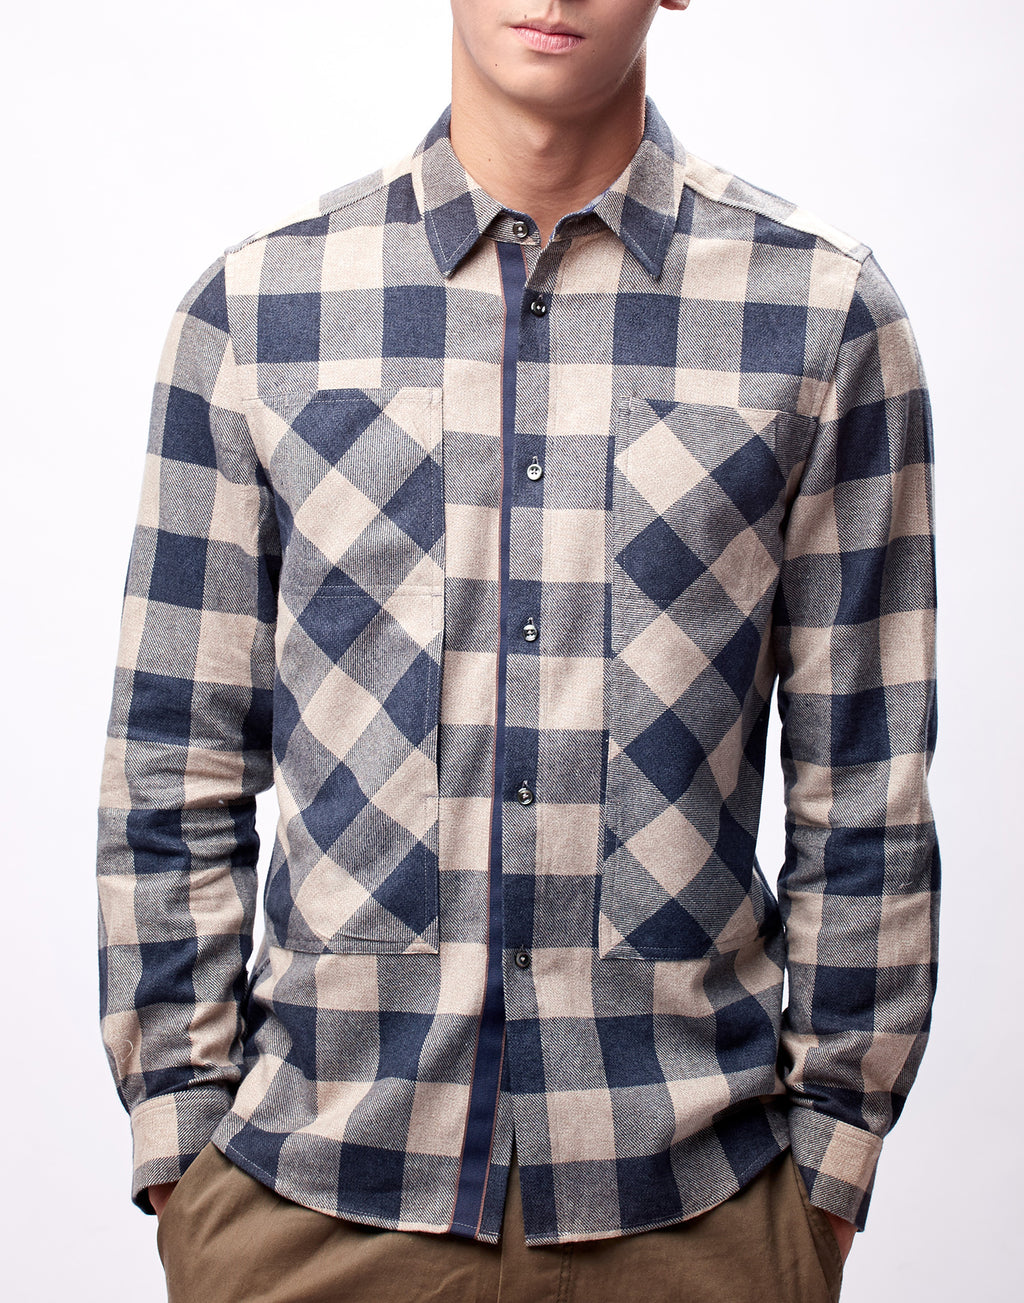 Beige and Blue Flannel Shirt